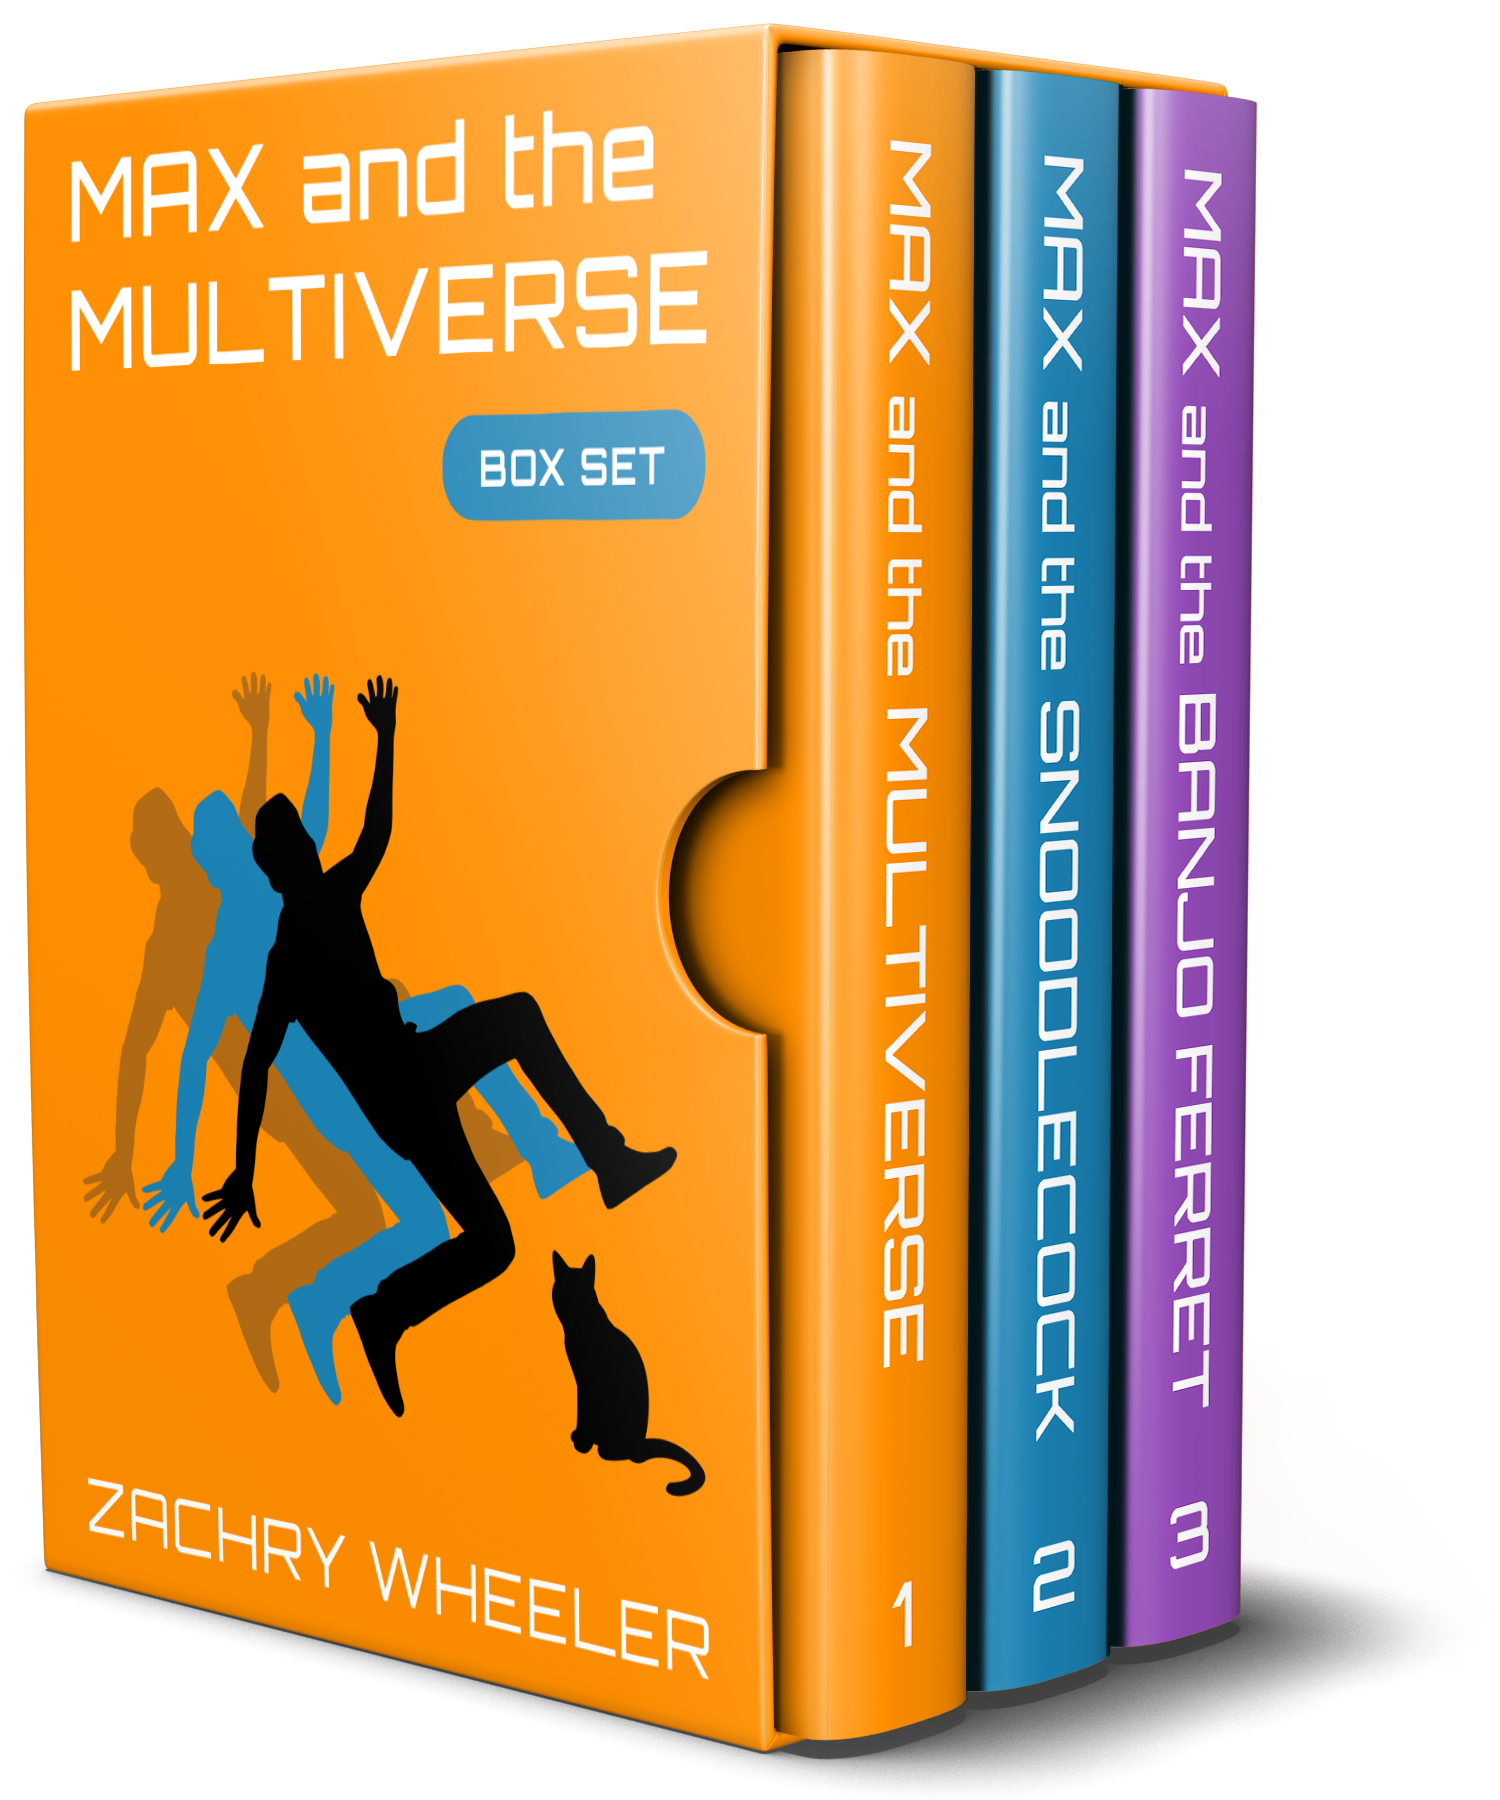 Learn more about the Max and the Multiverse Box Set